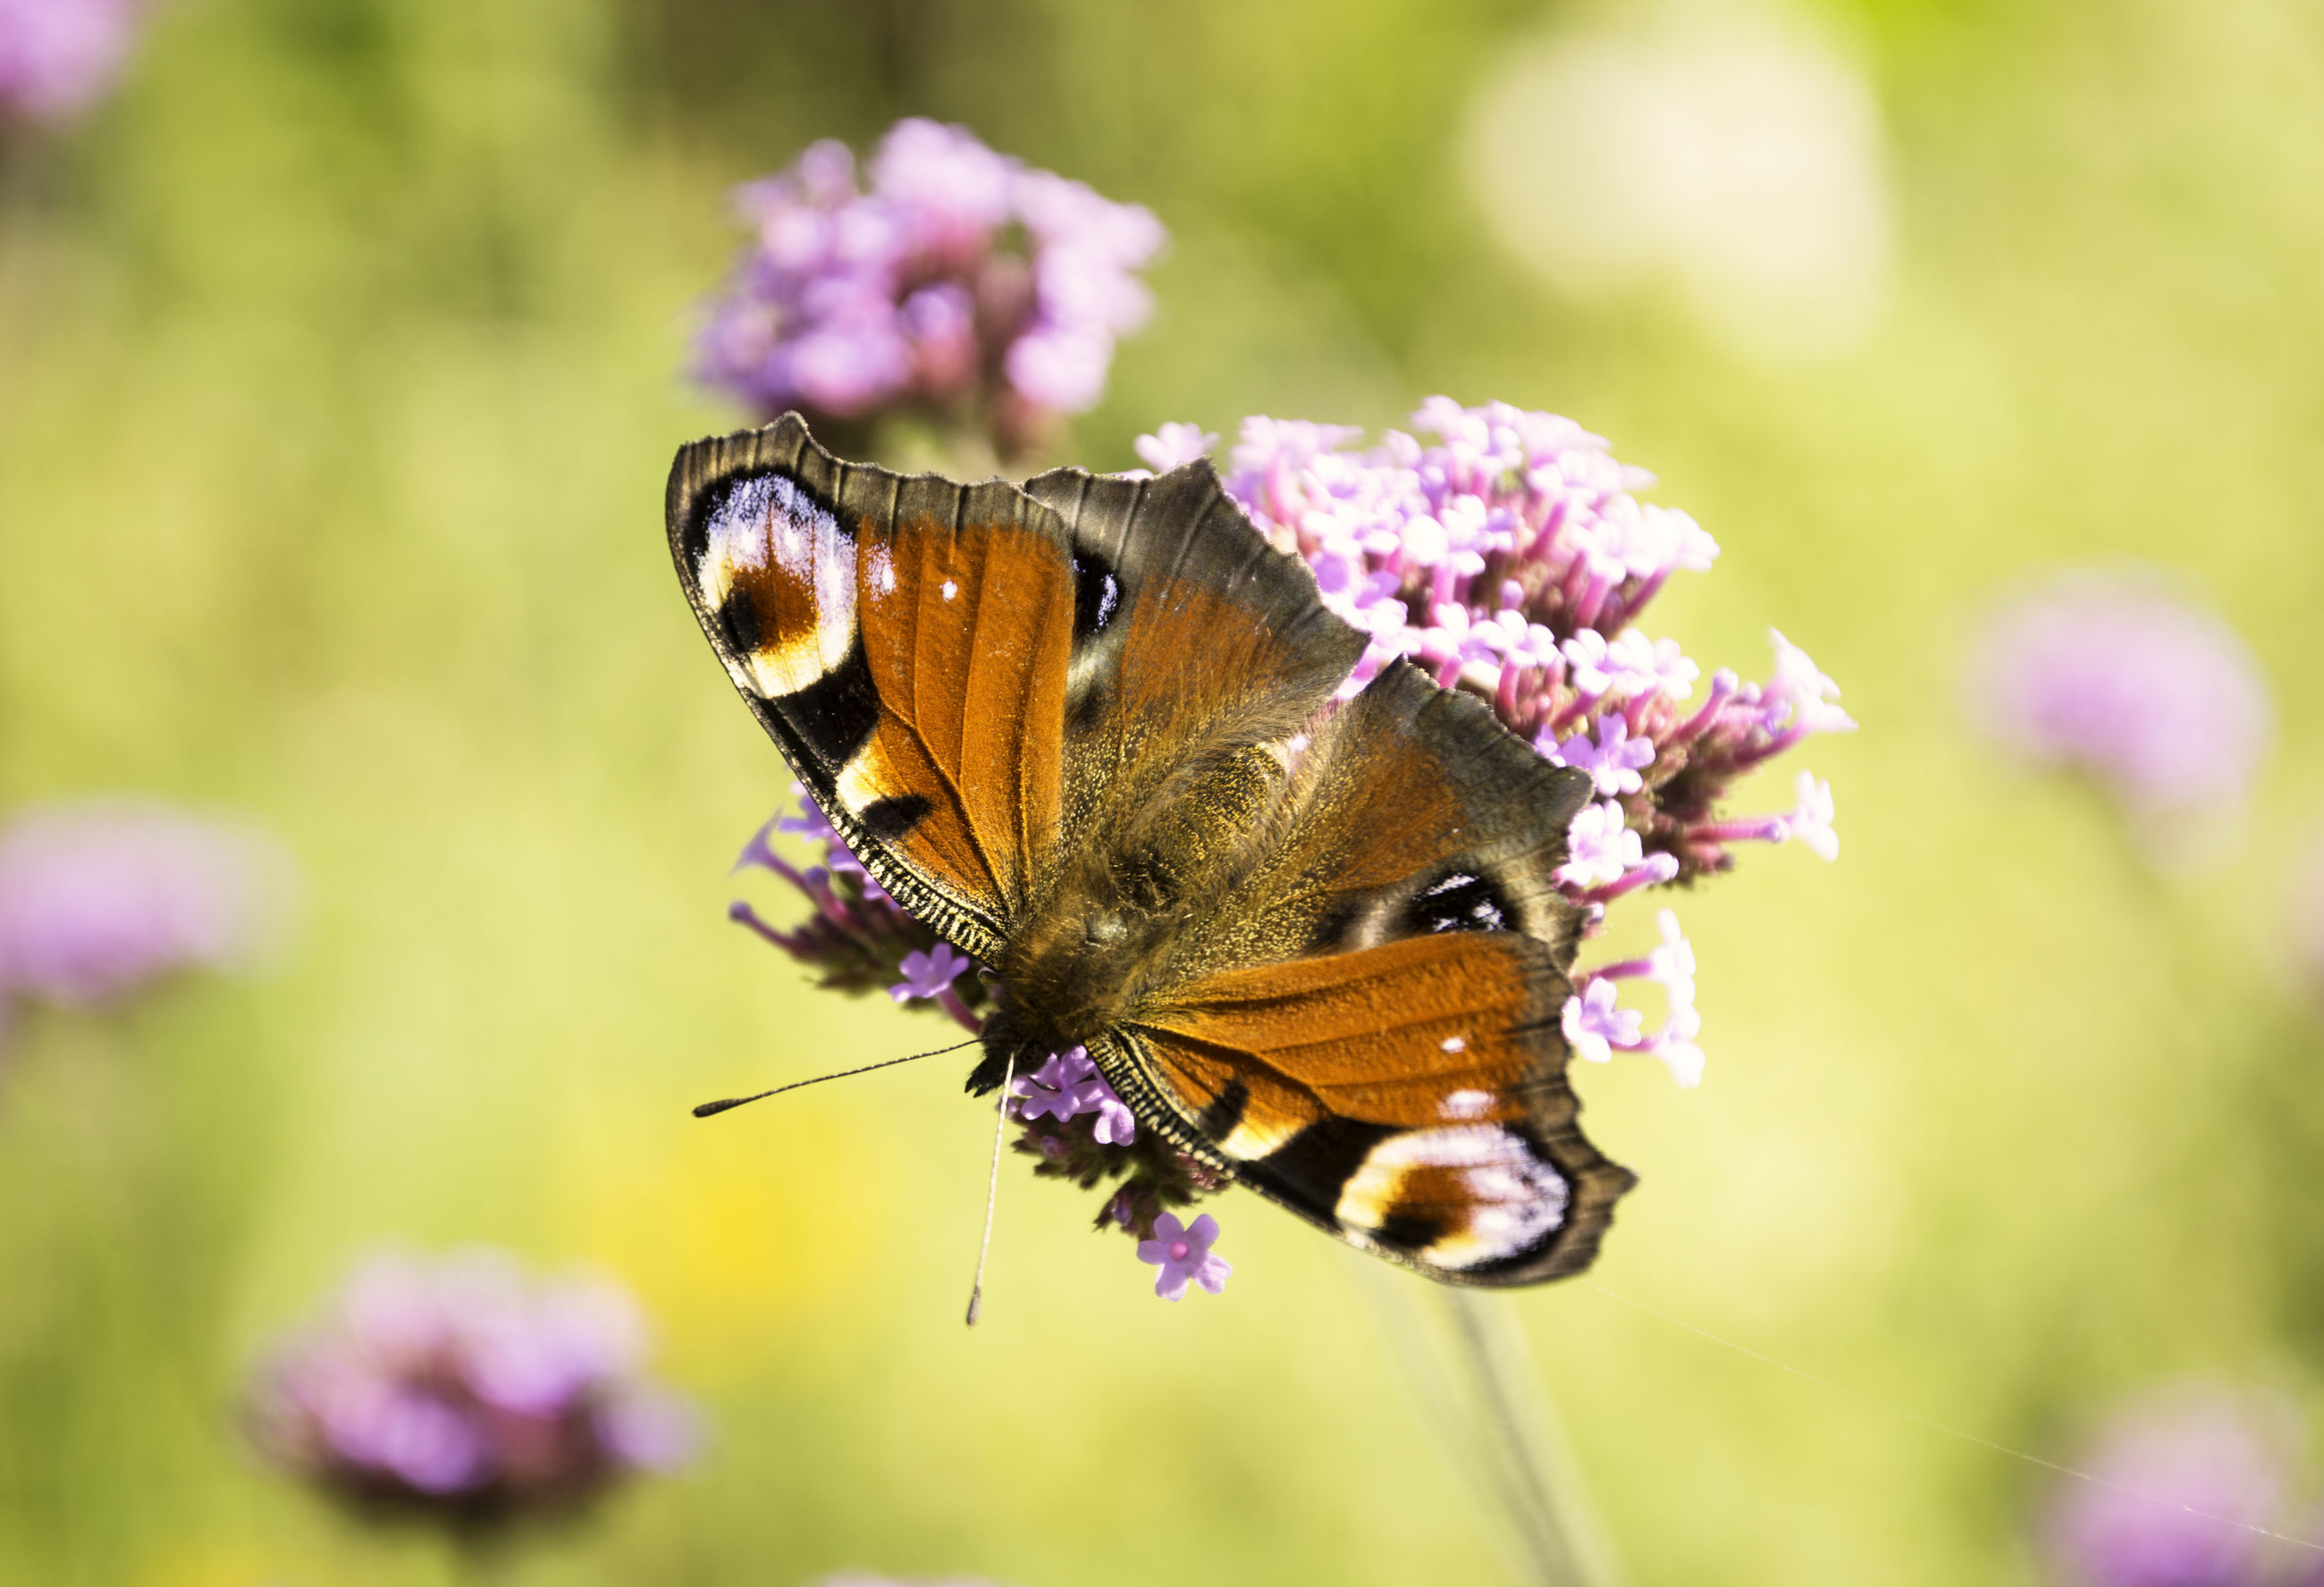 CLOSE-UP OF BUTTERFLY POLLINATING ON FRESH PINK FLOWER